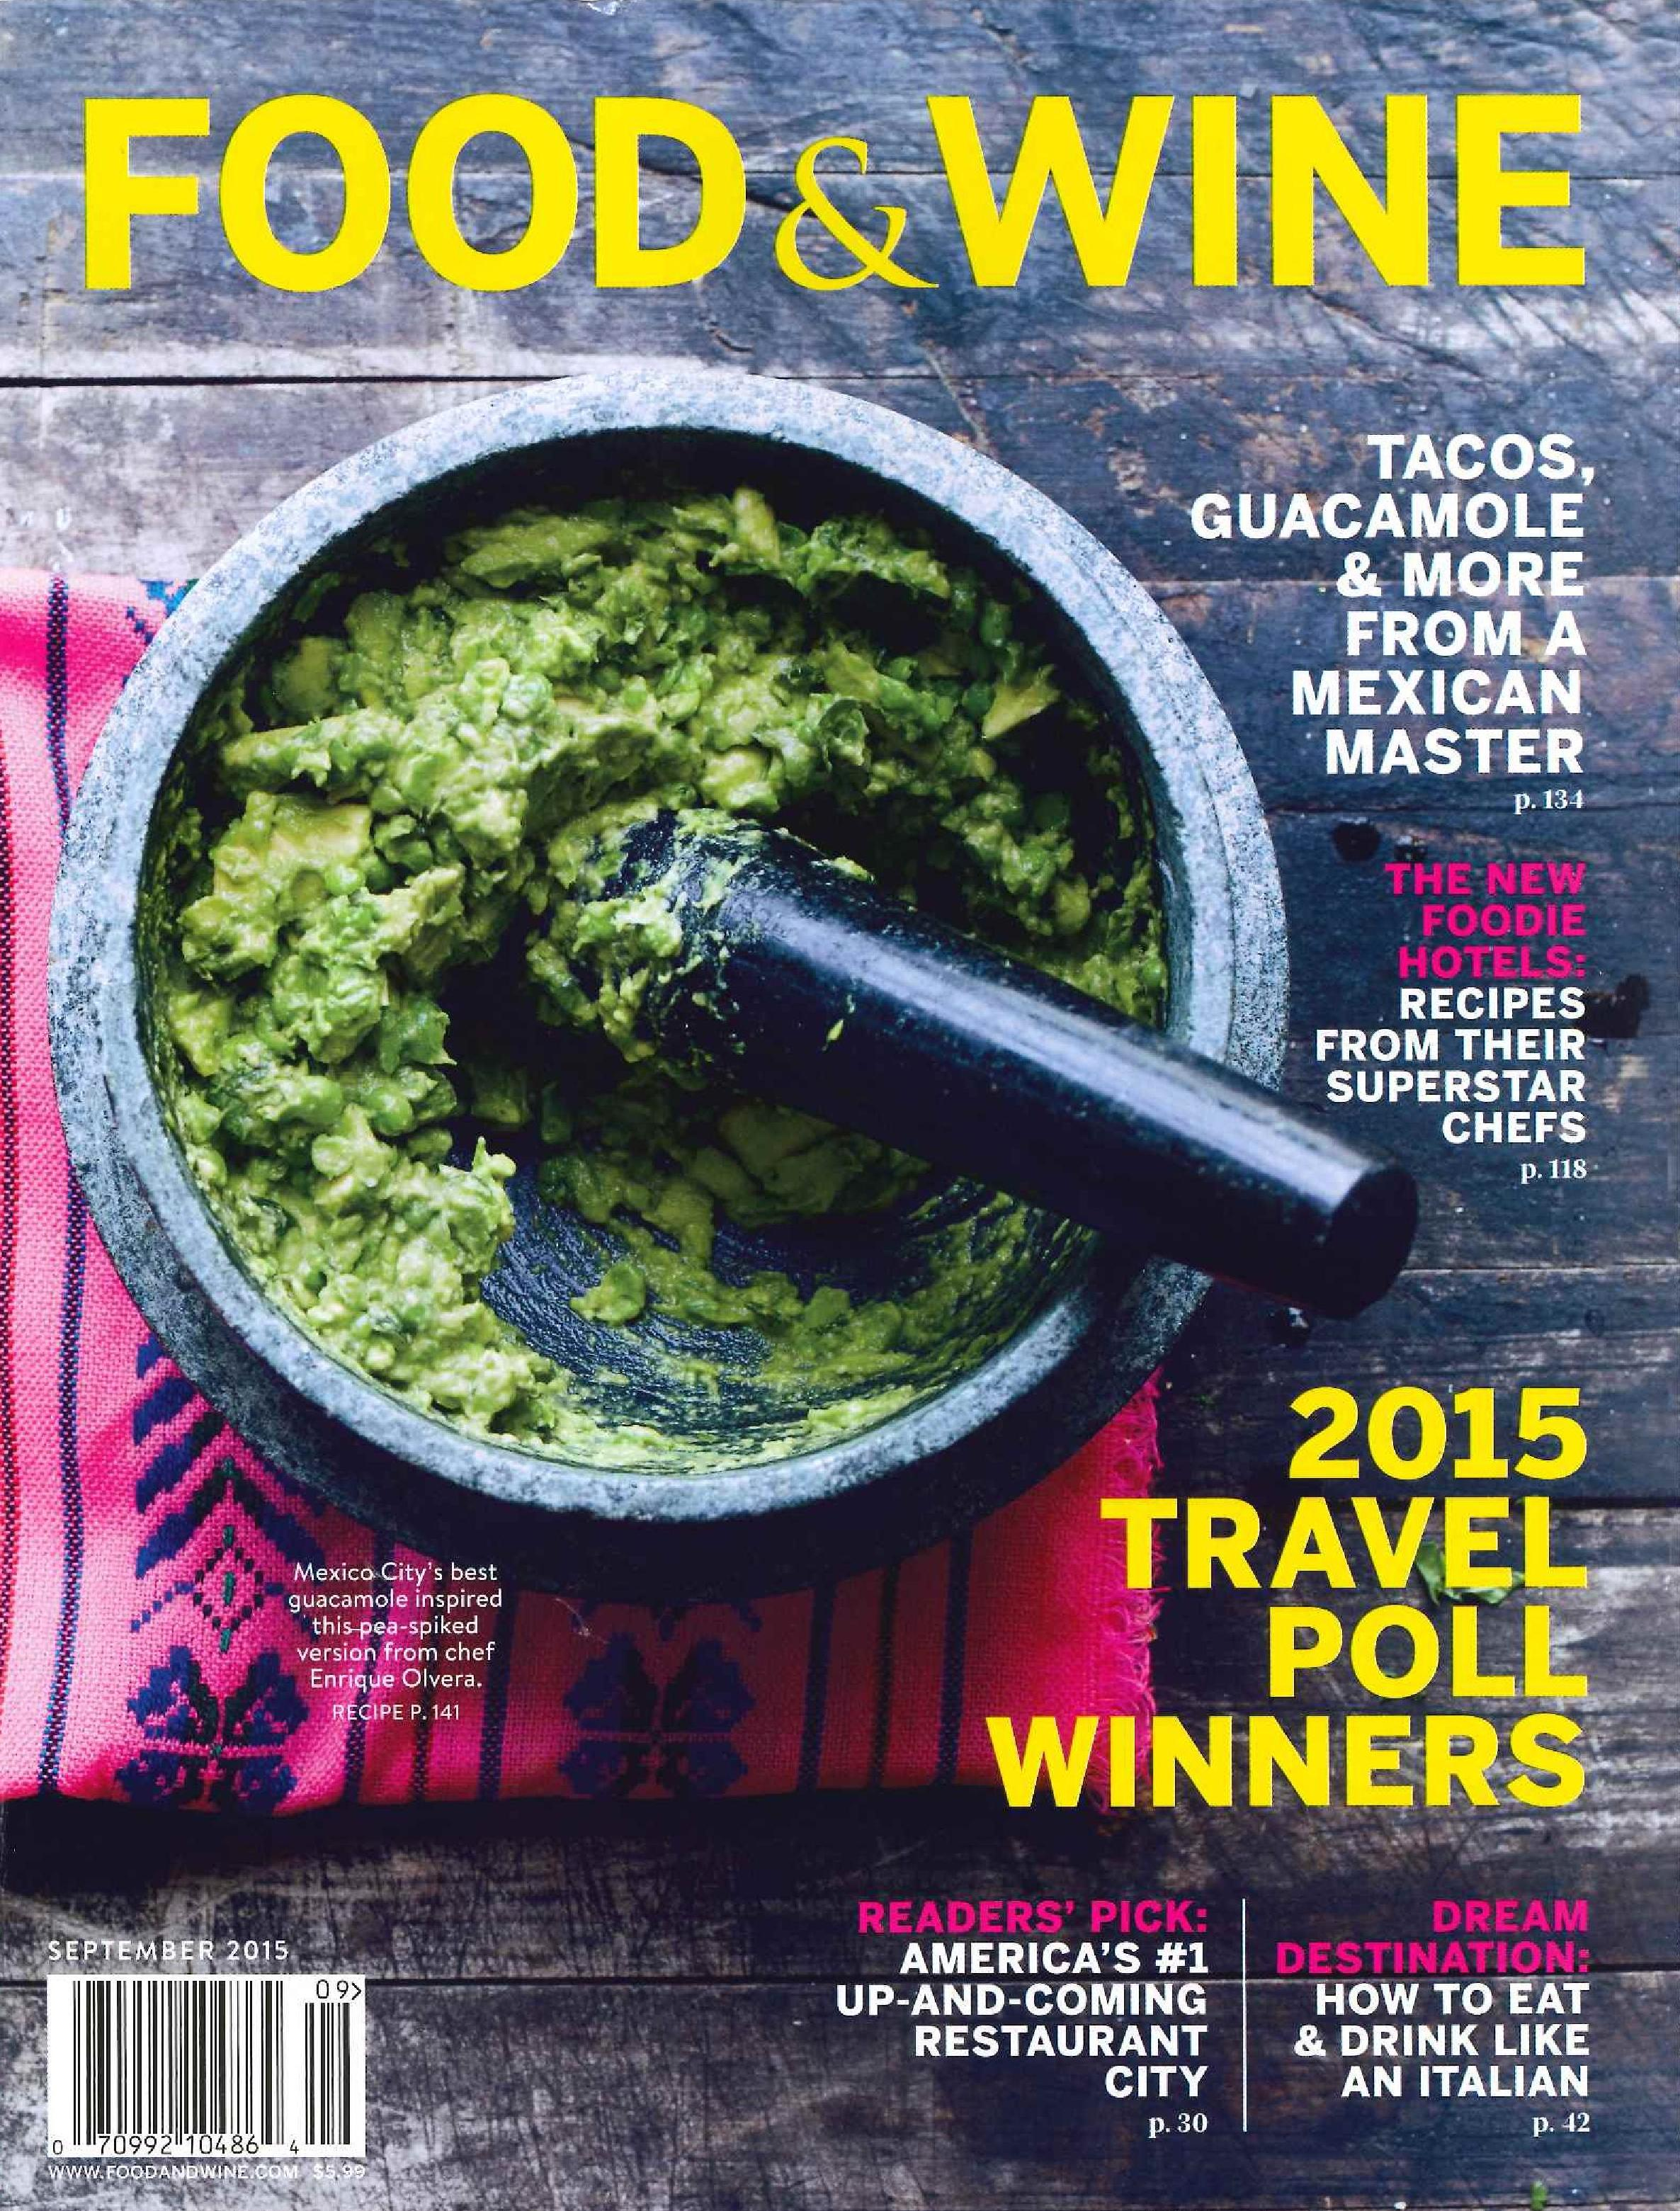 Food & Wine September 2015 - Cover